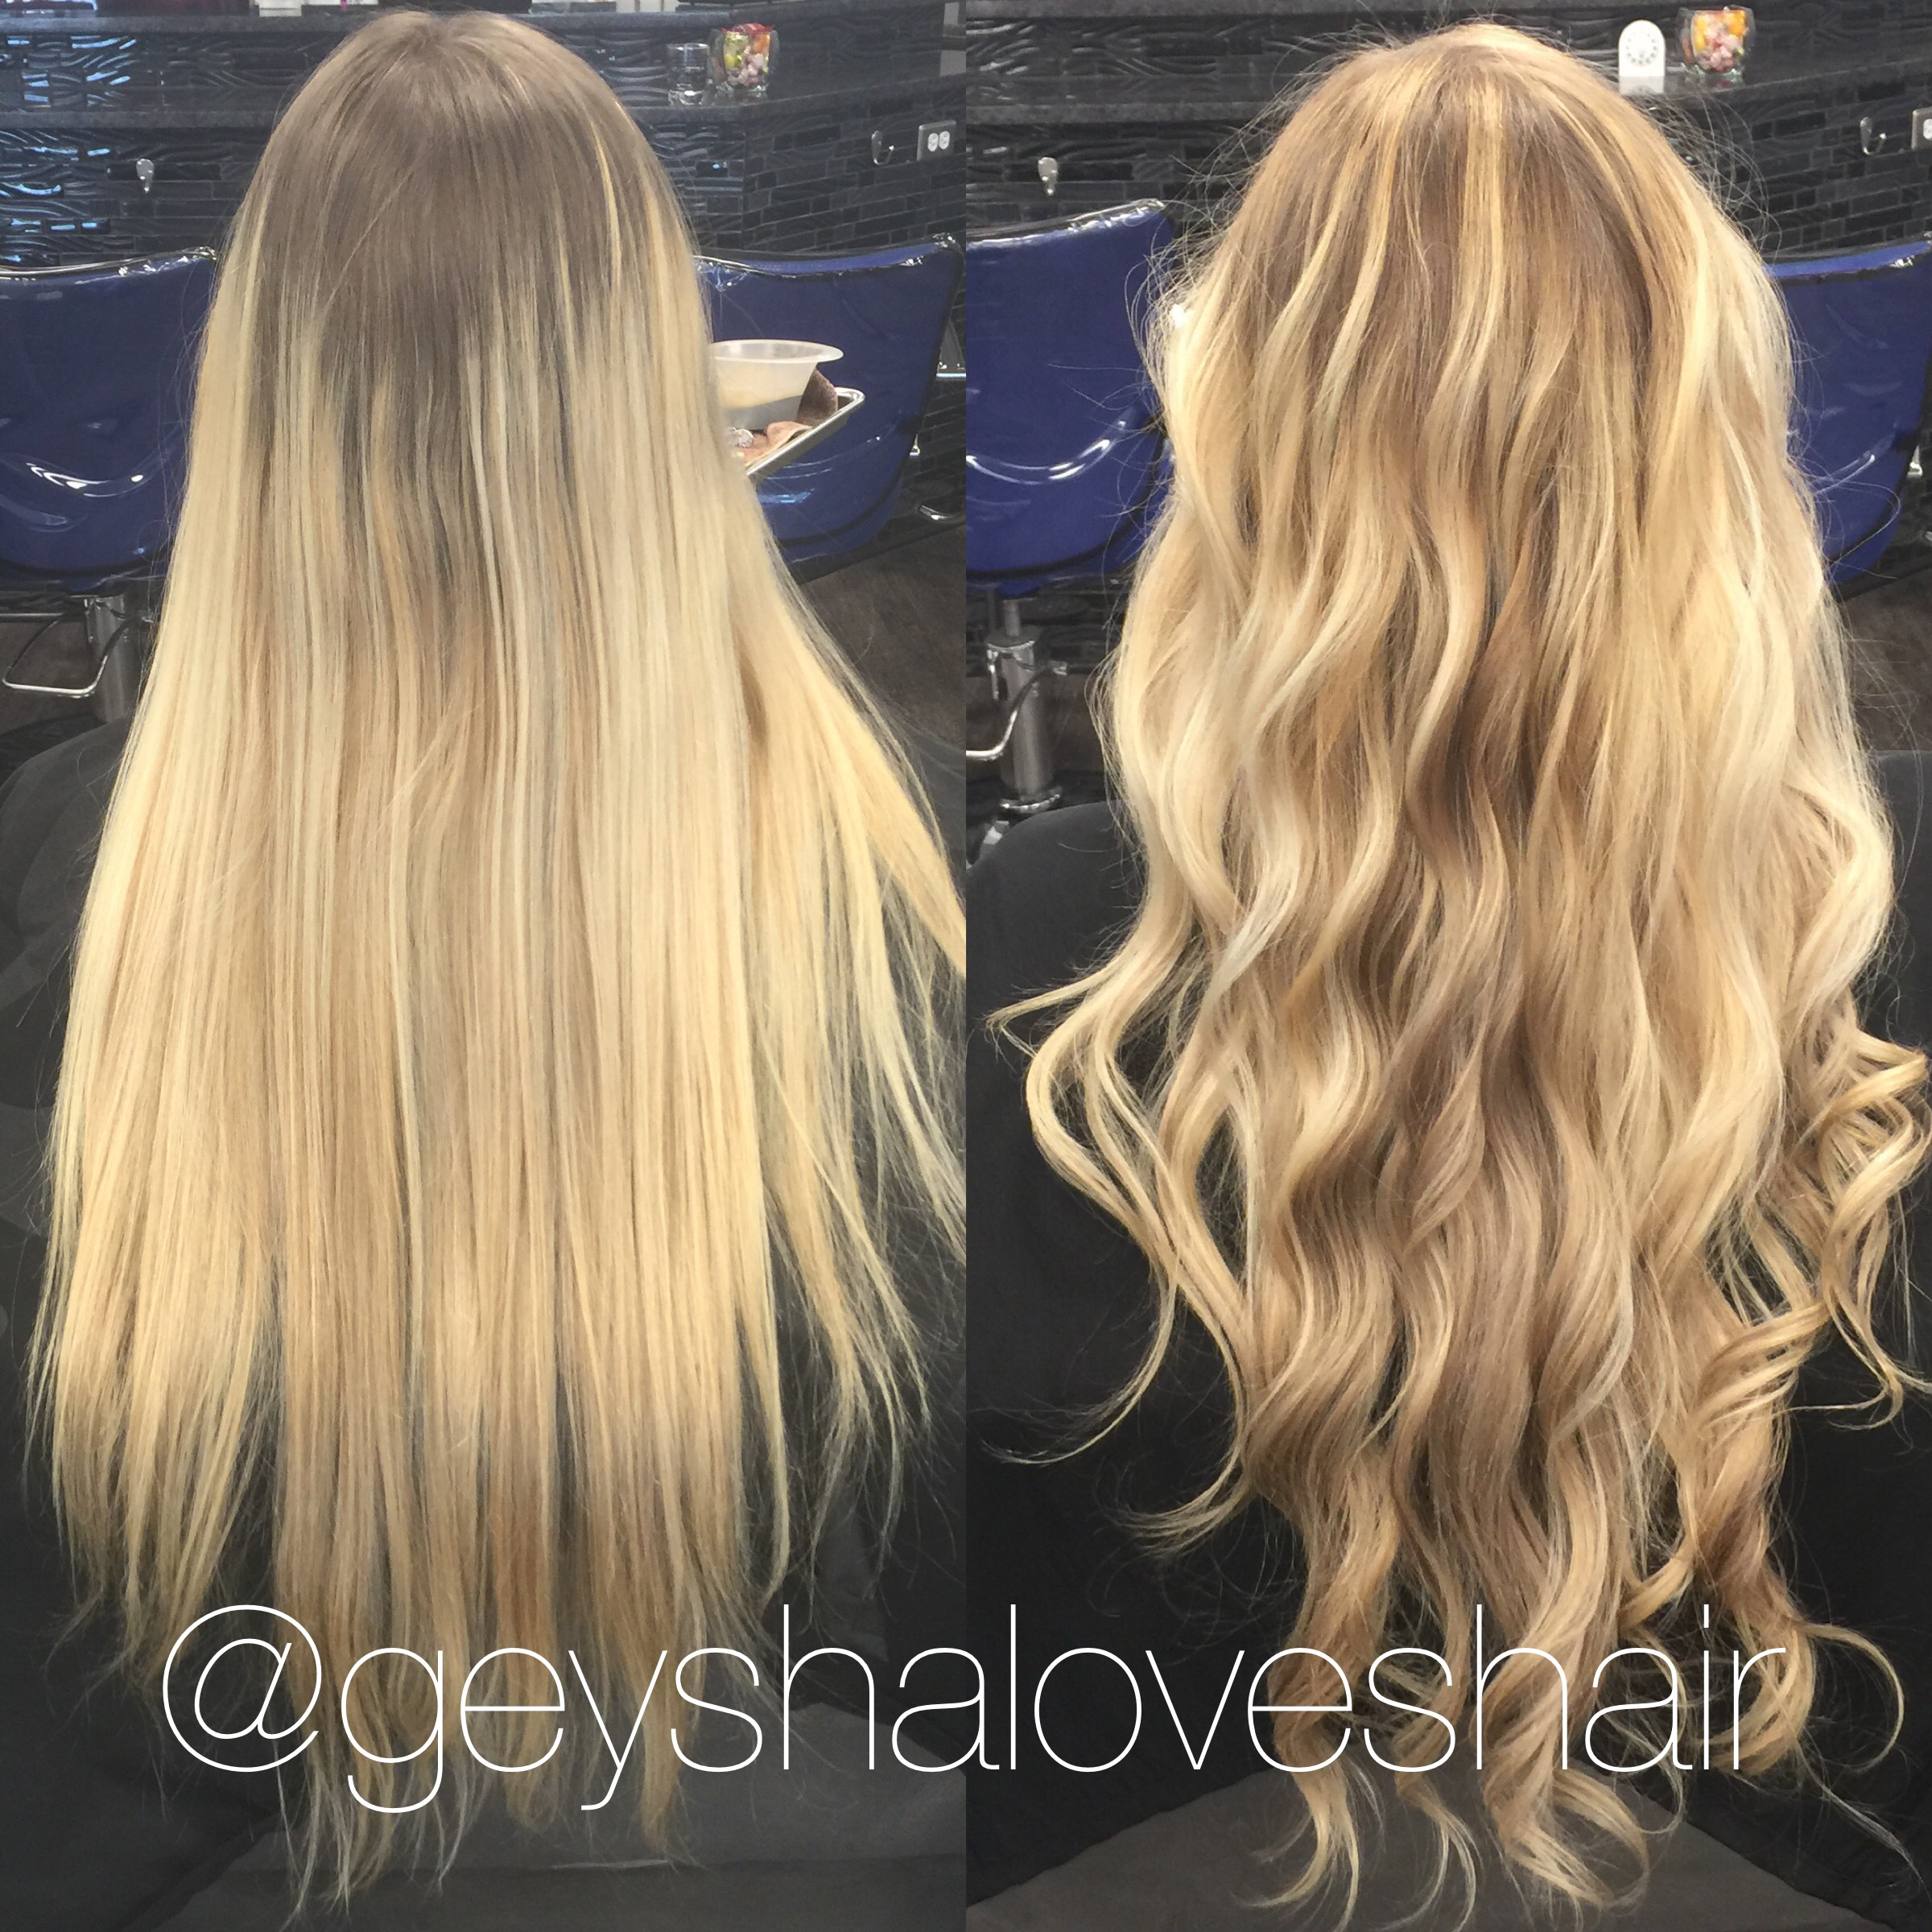 Transitioning from Foil to Balayage: The Why, the How